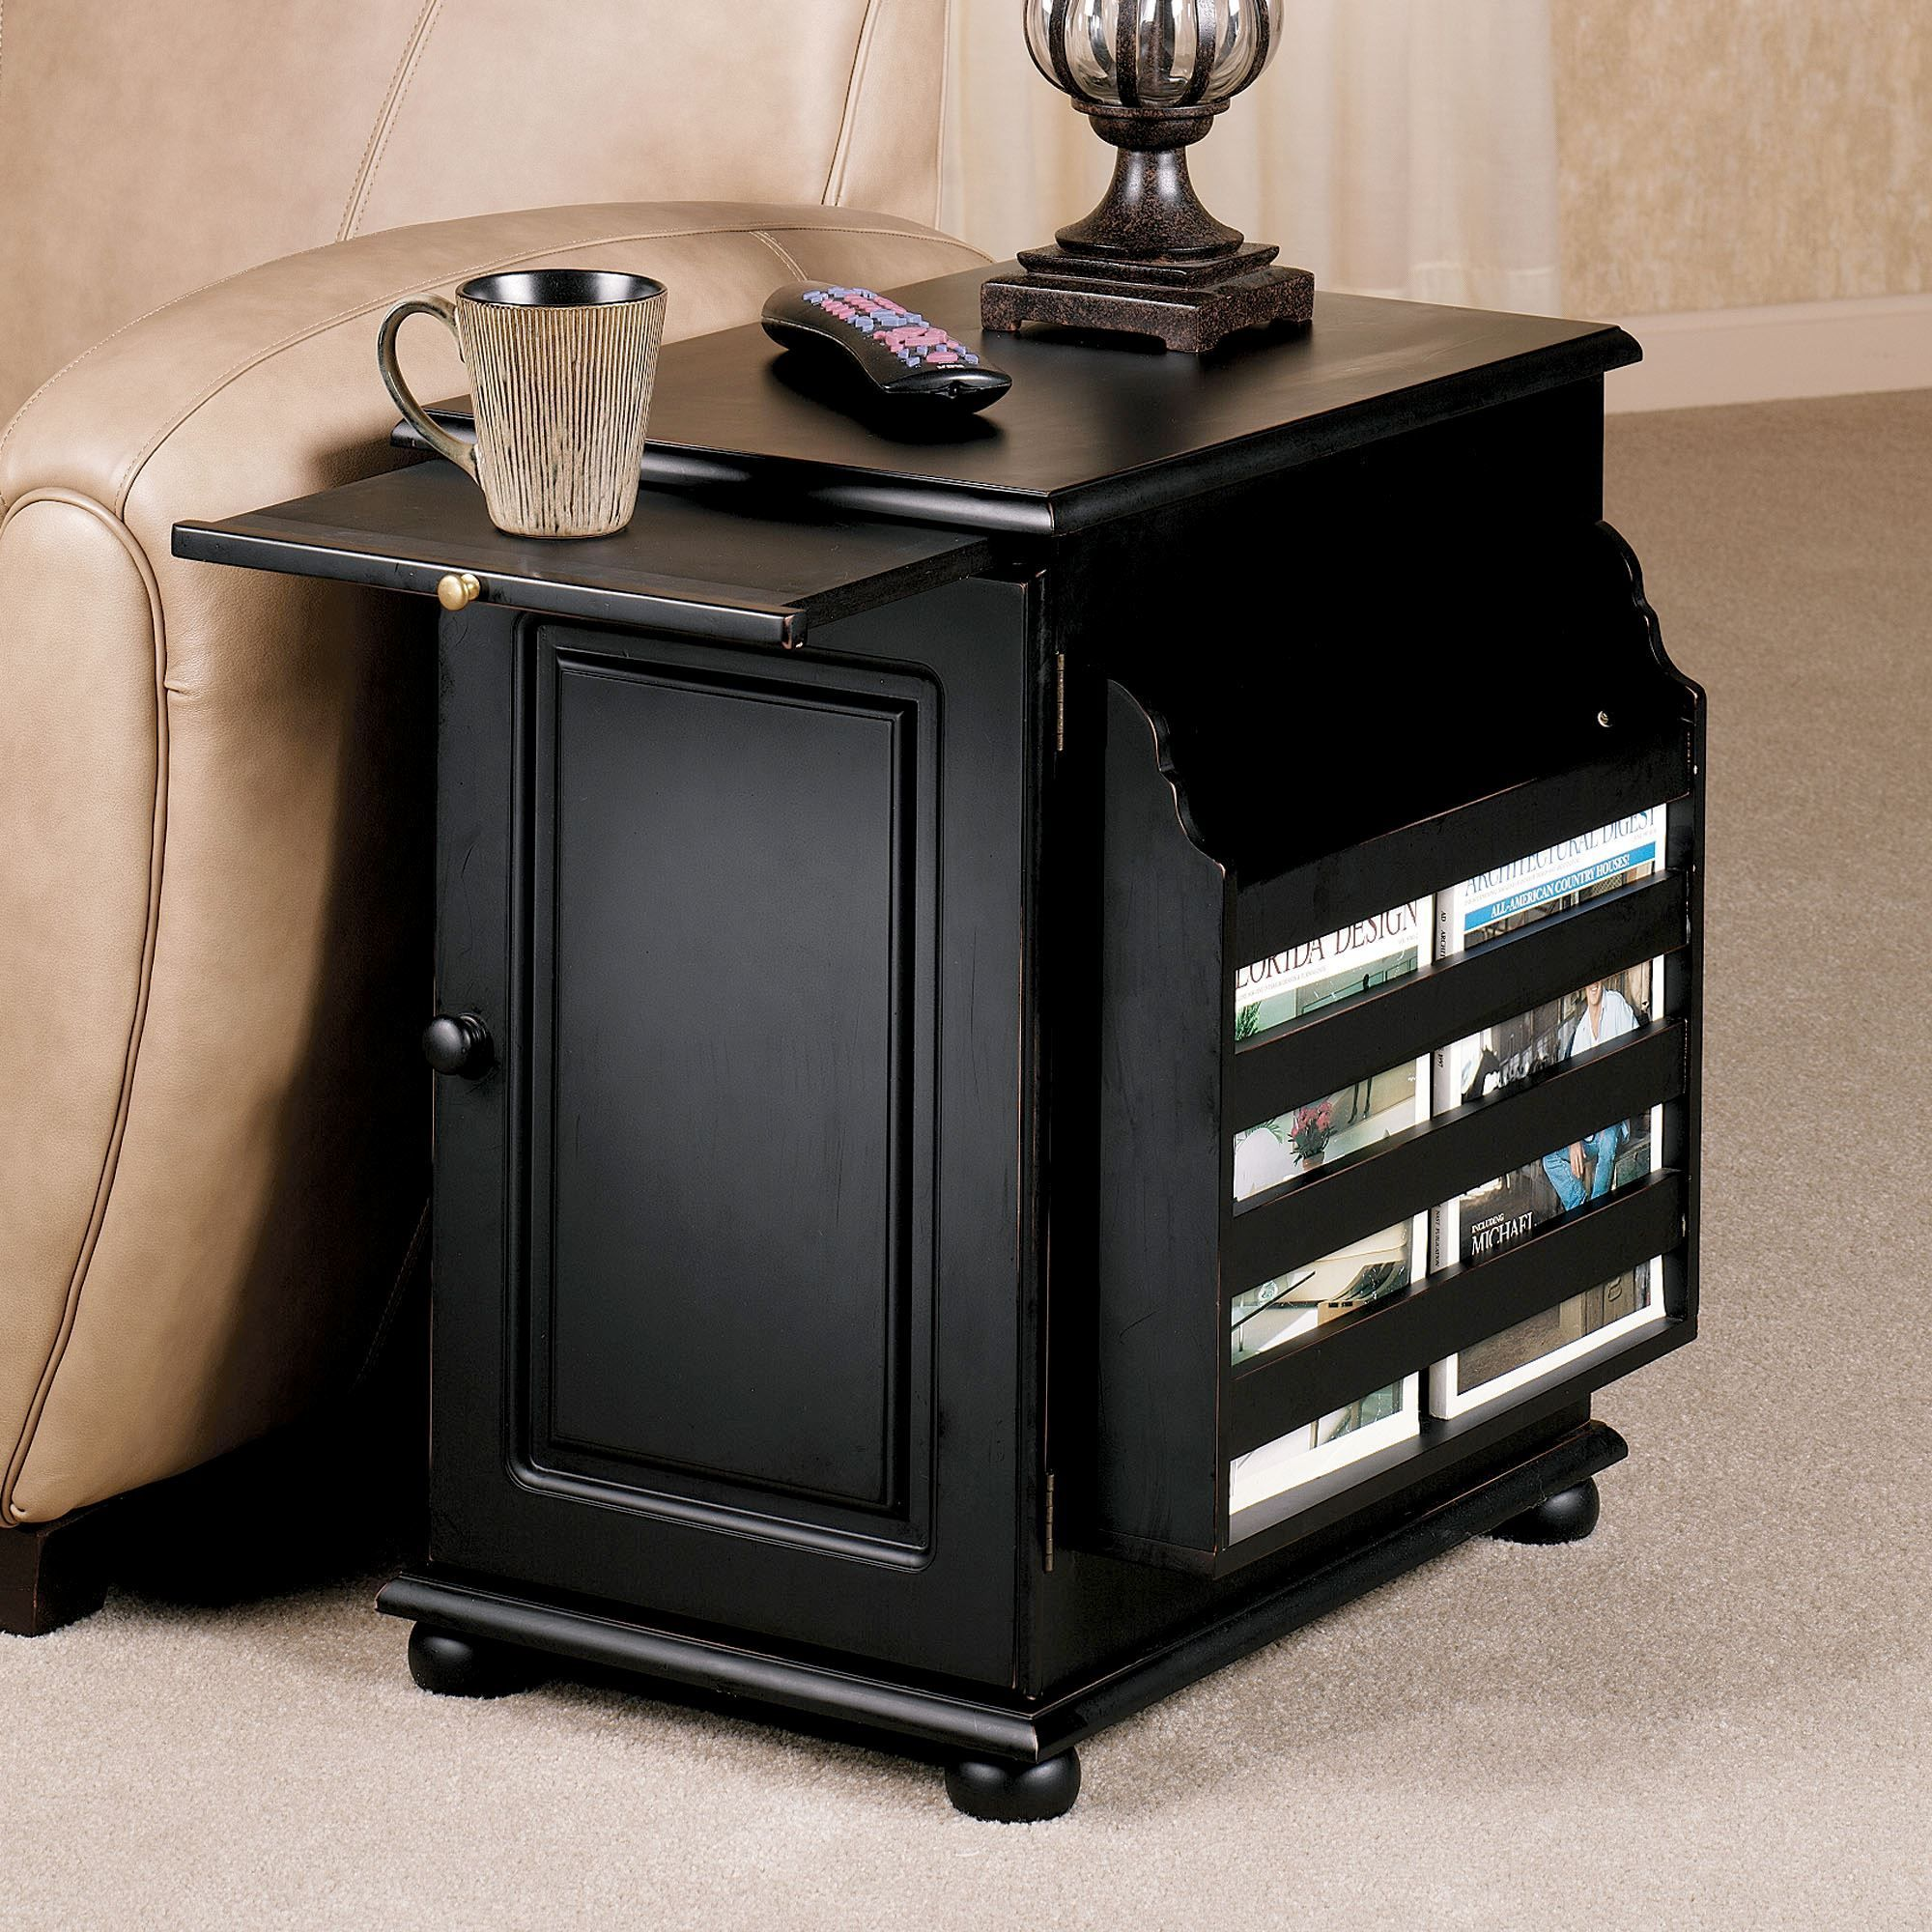 Related Image End Tables With Drawers Table Storage Black End